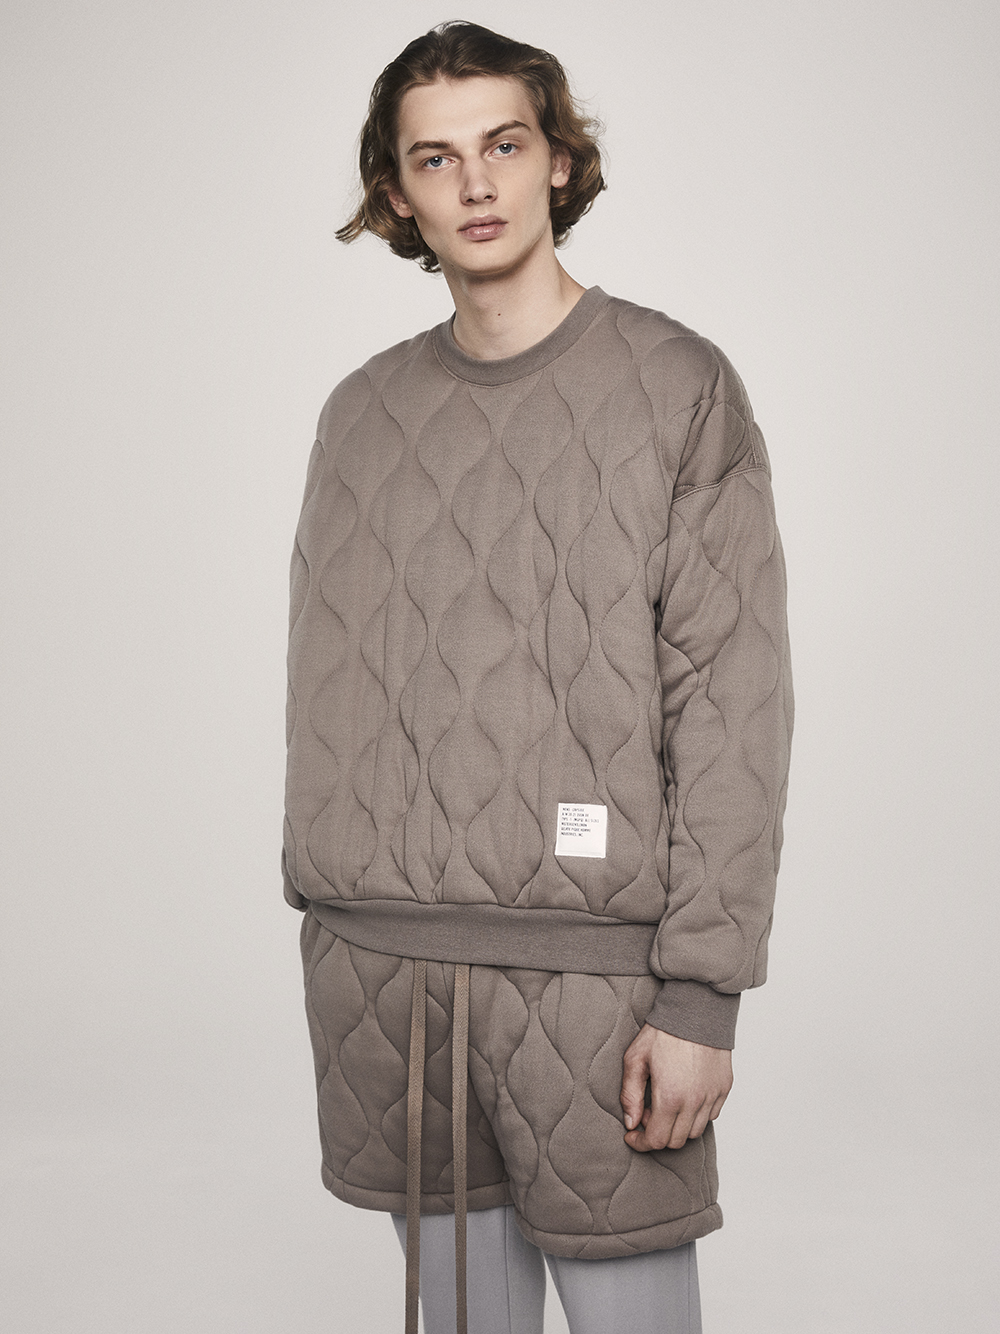 【MISTERGENTLEMAN×HOMME】QUILTED PULLOVER | PMCT205988